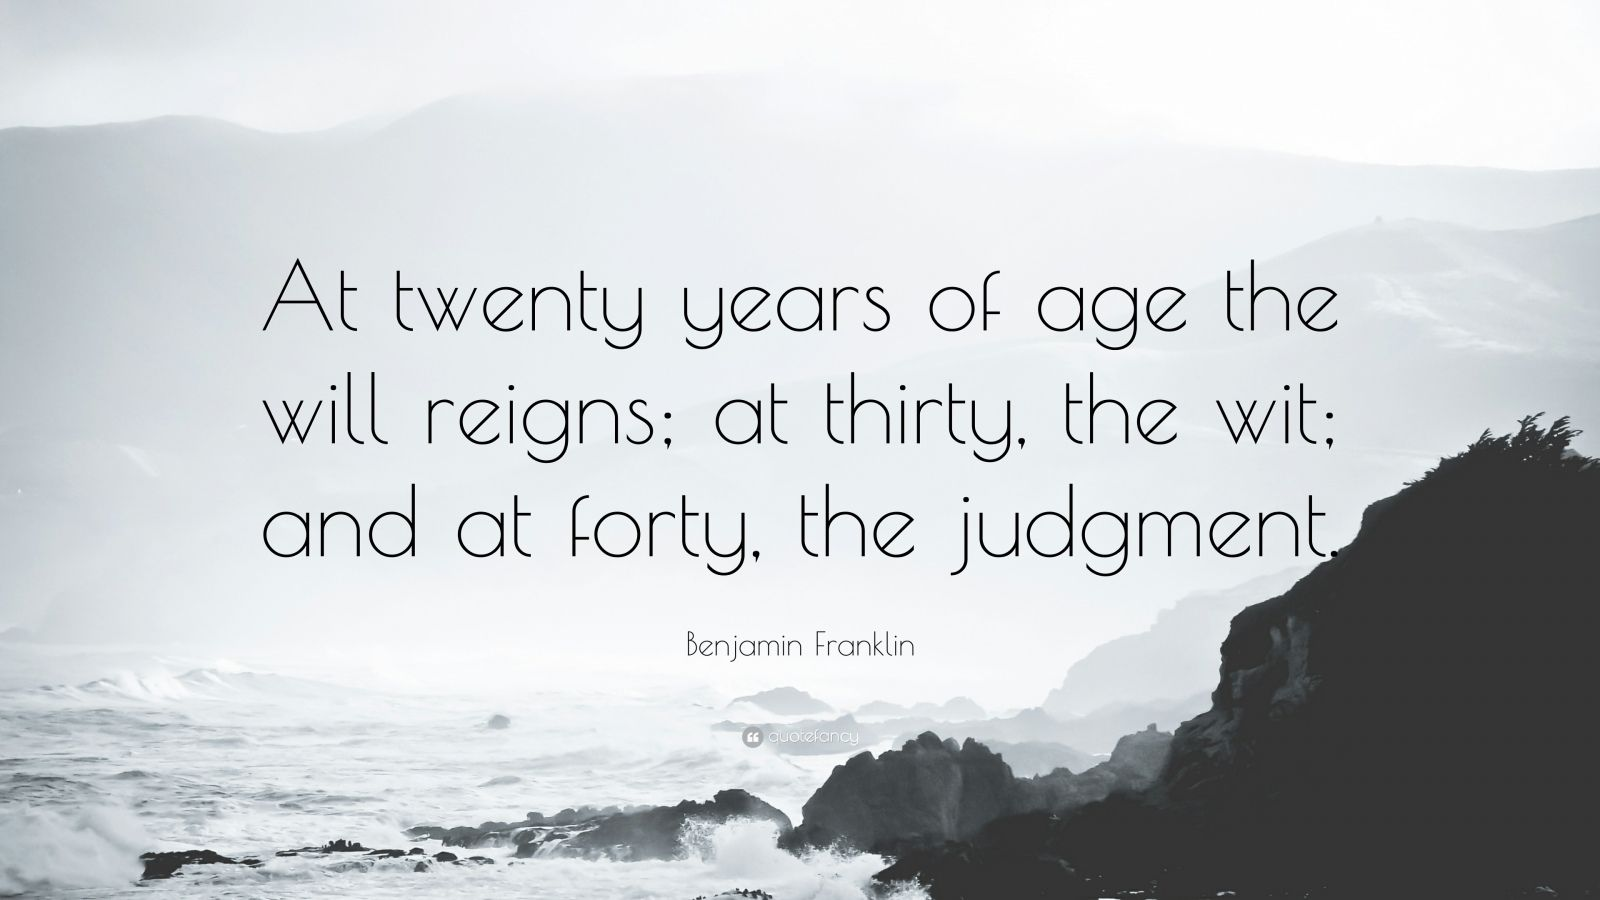 """Benjamin Franklin Quote: """"At twenty years of age the will reigns; at thirty, the wit; and at forty, the judgment."""""""